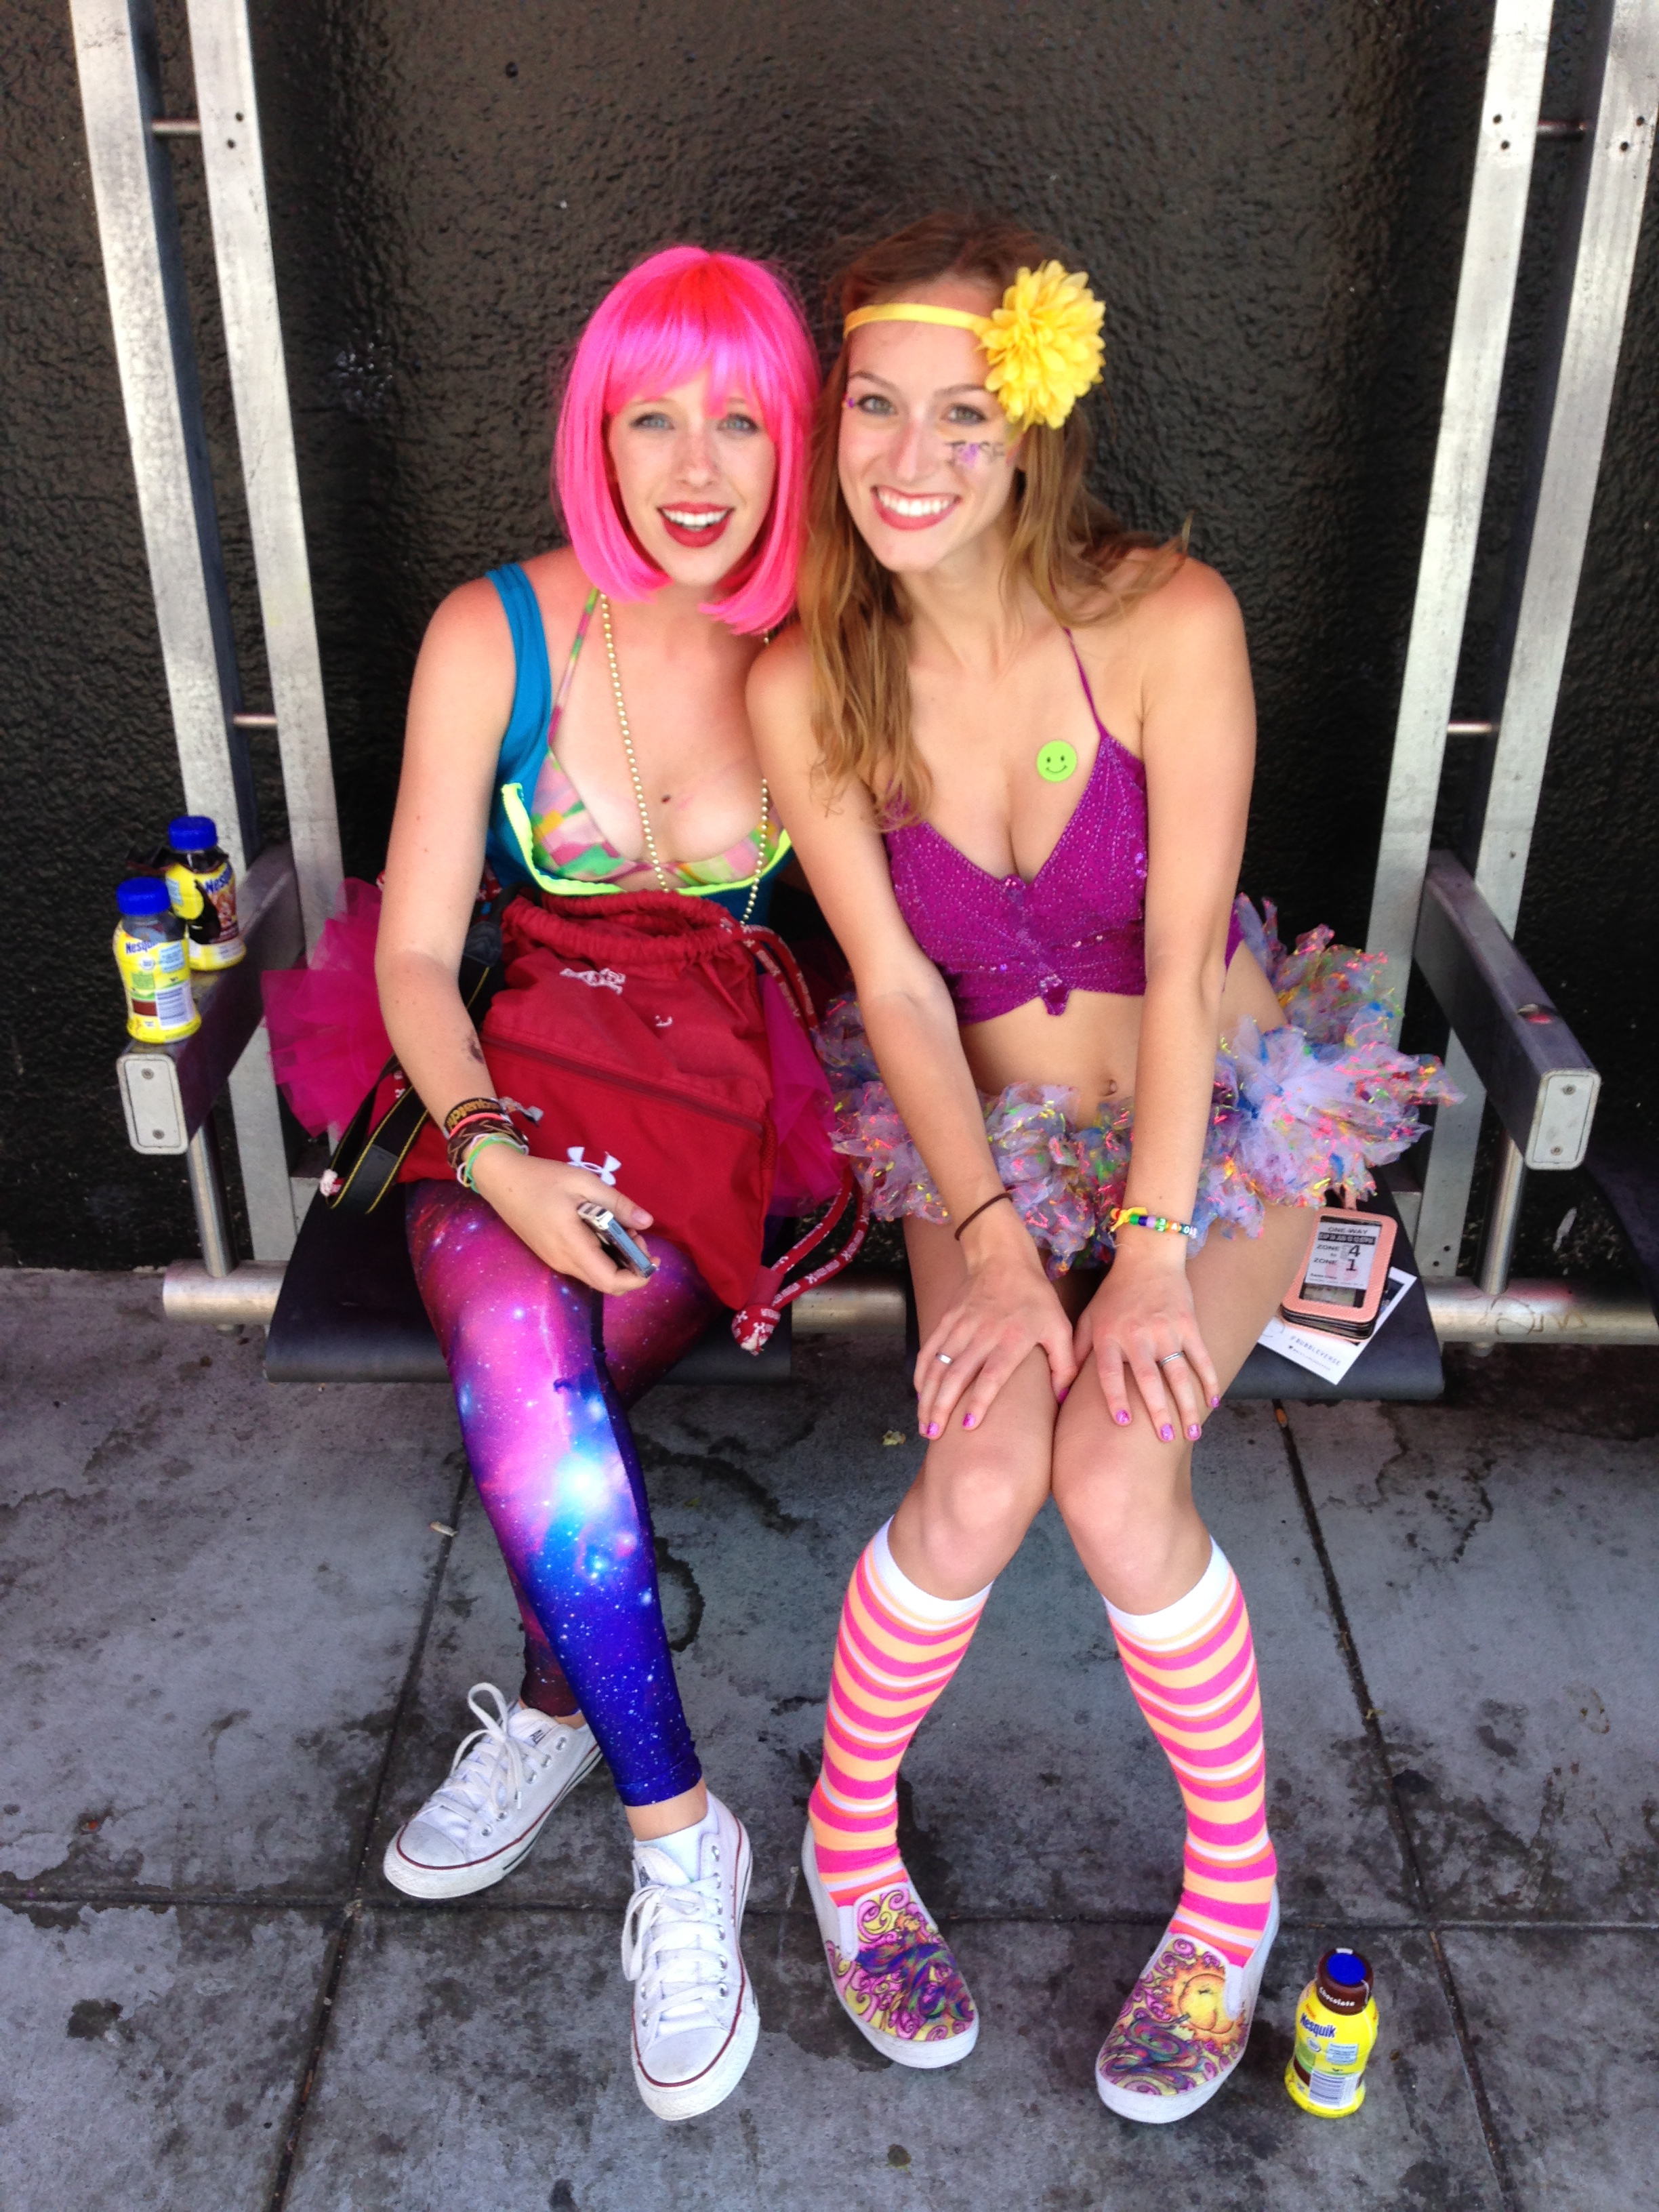 25 college halloween costumes to drive other crazy - flawssy